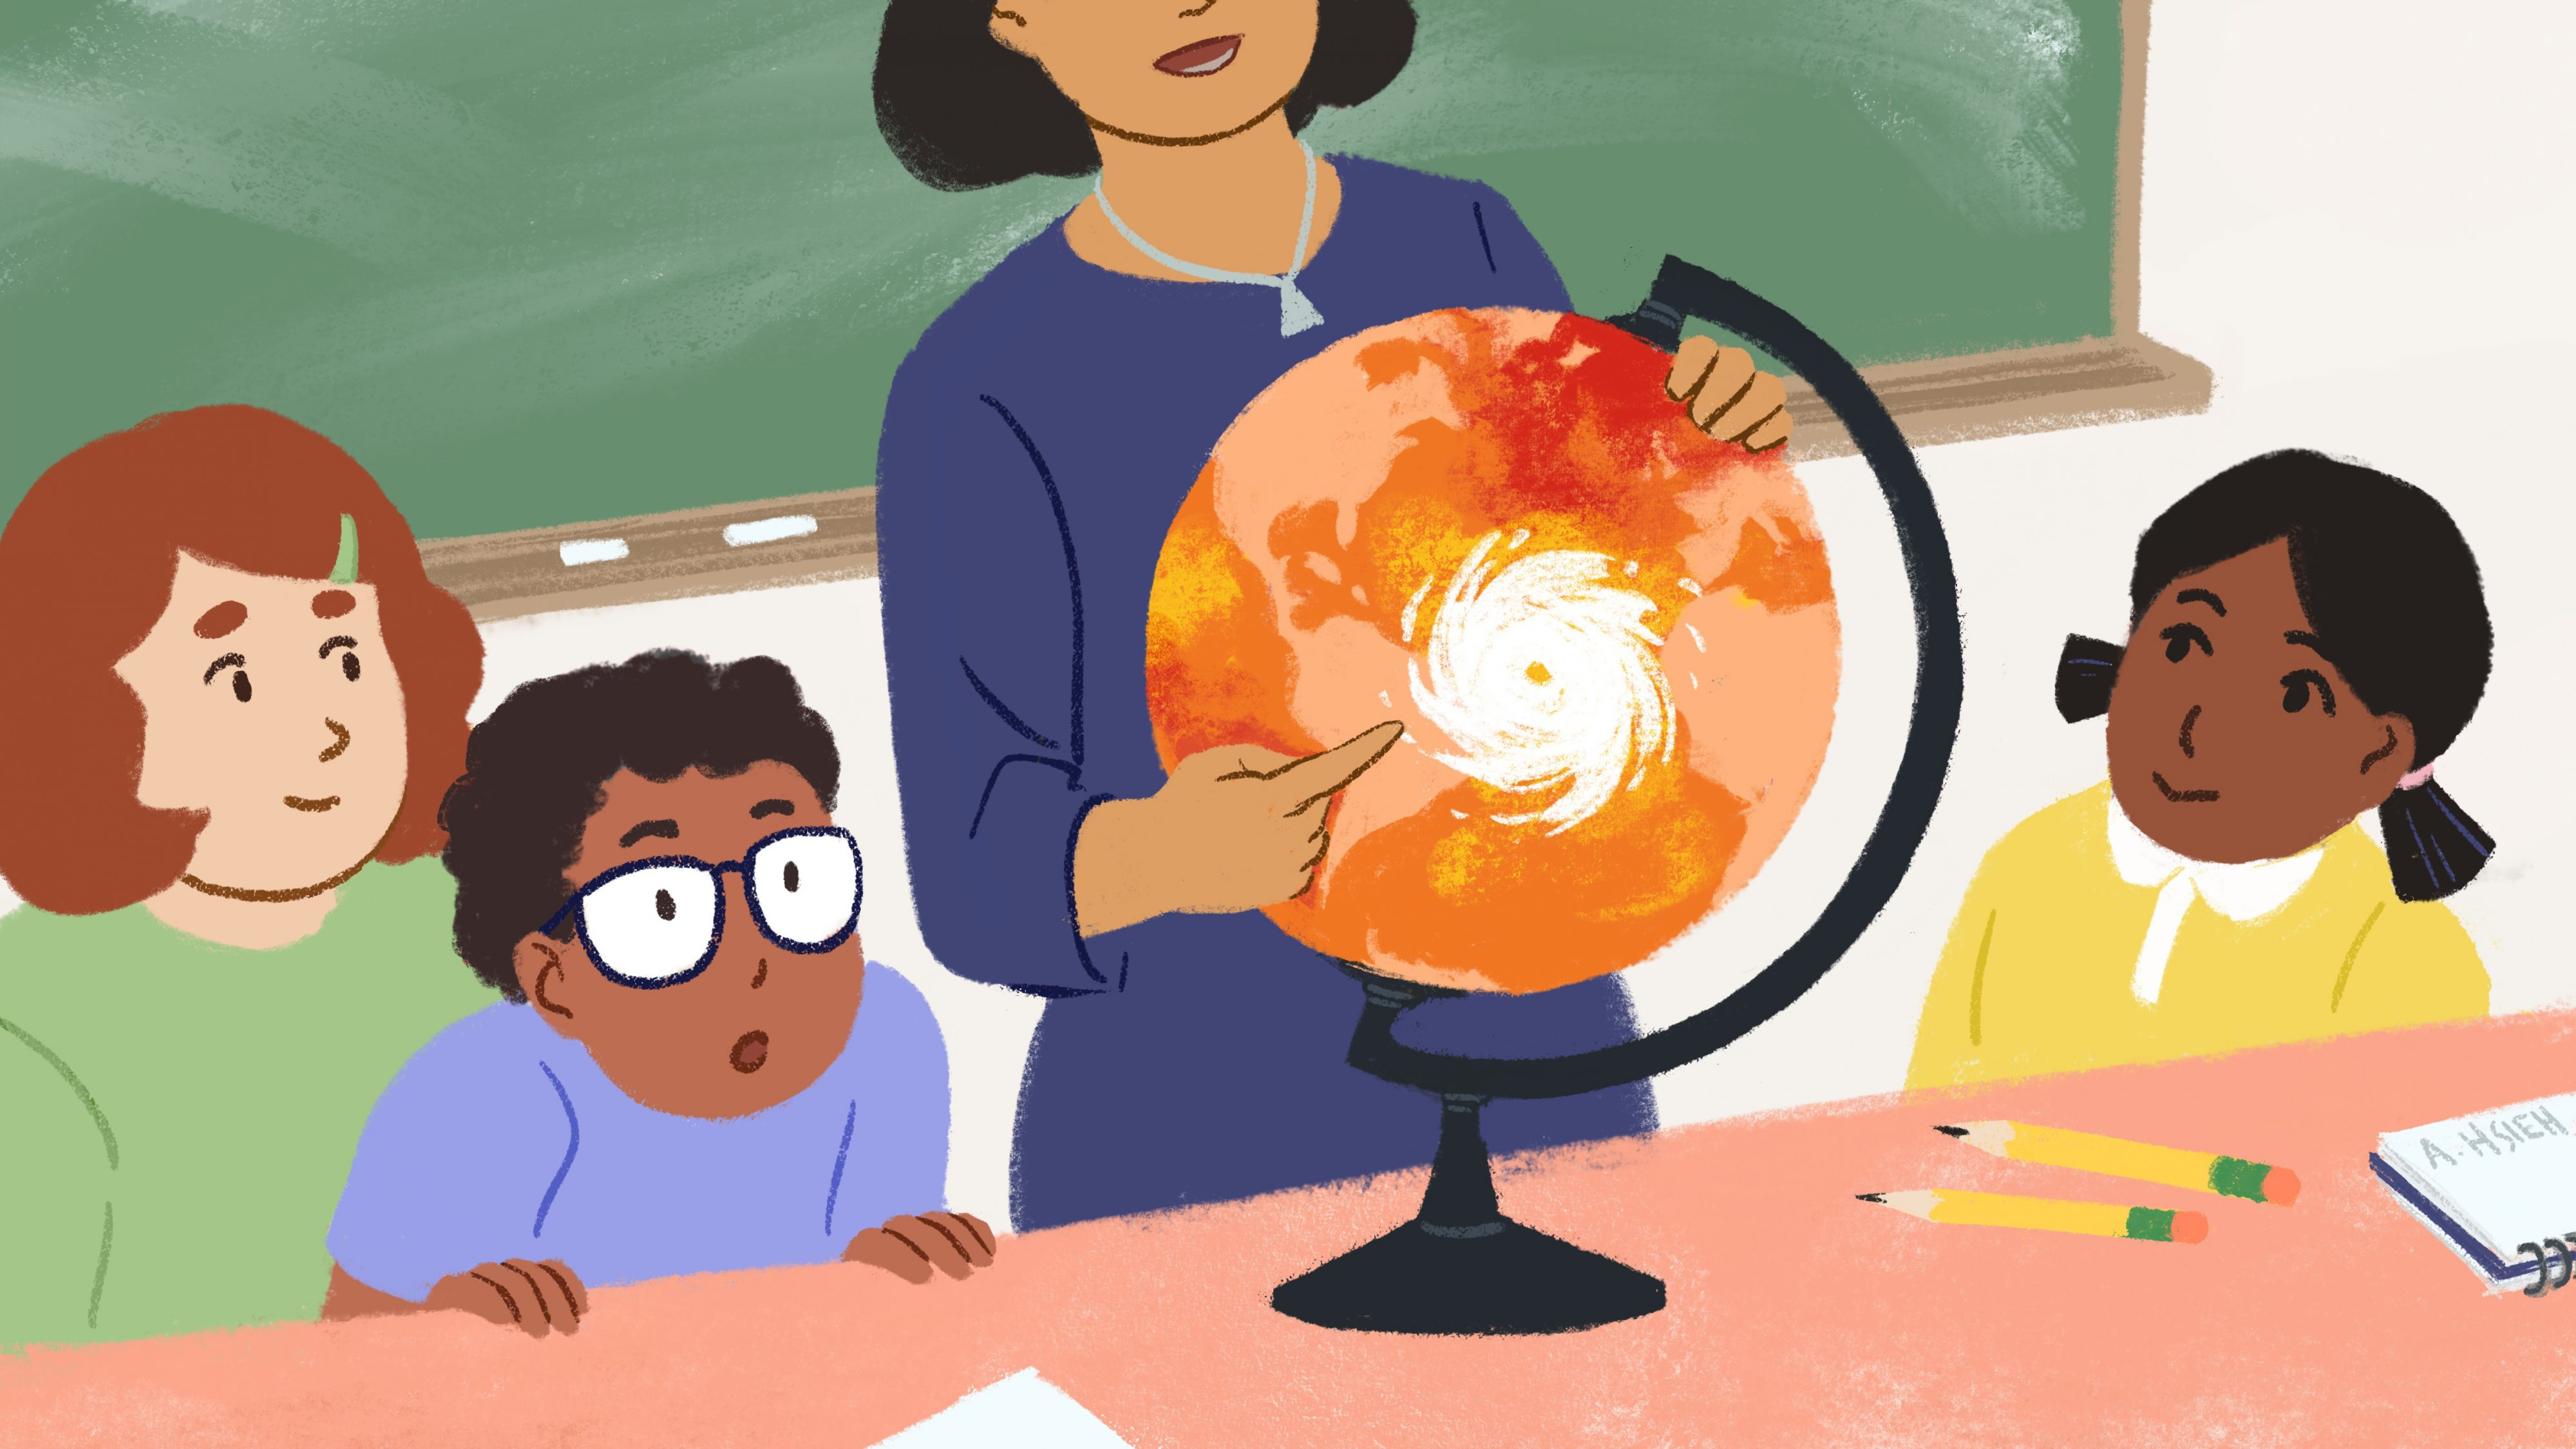 Most teachers don't teach climate change; 4 in 5 parents wish they did